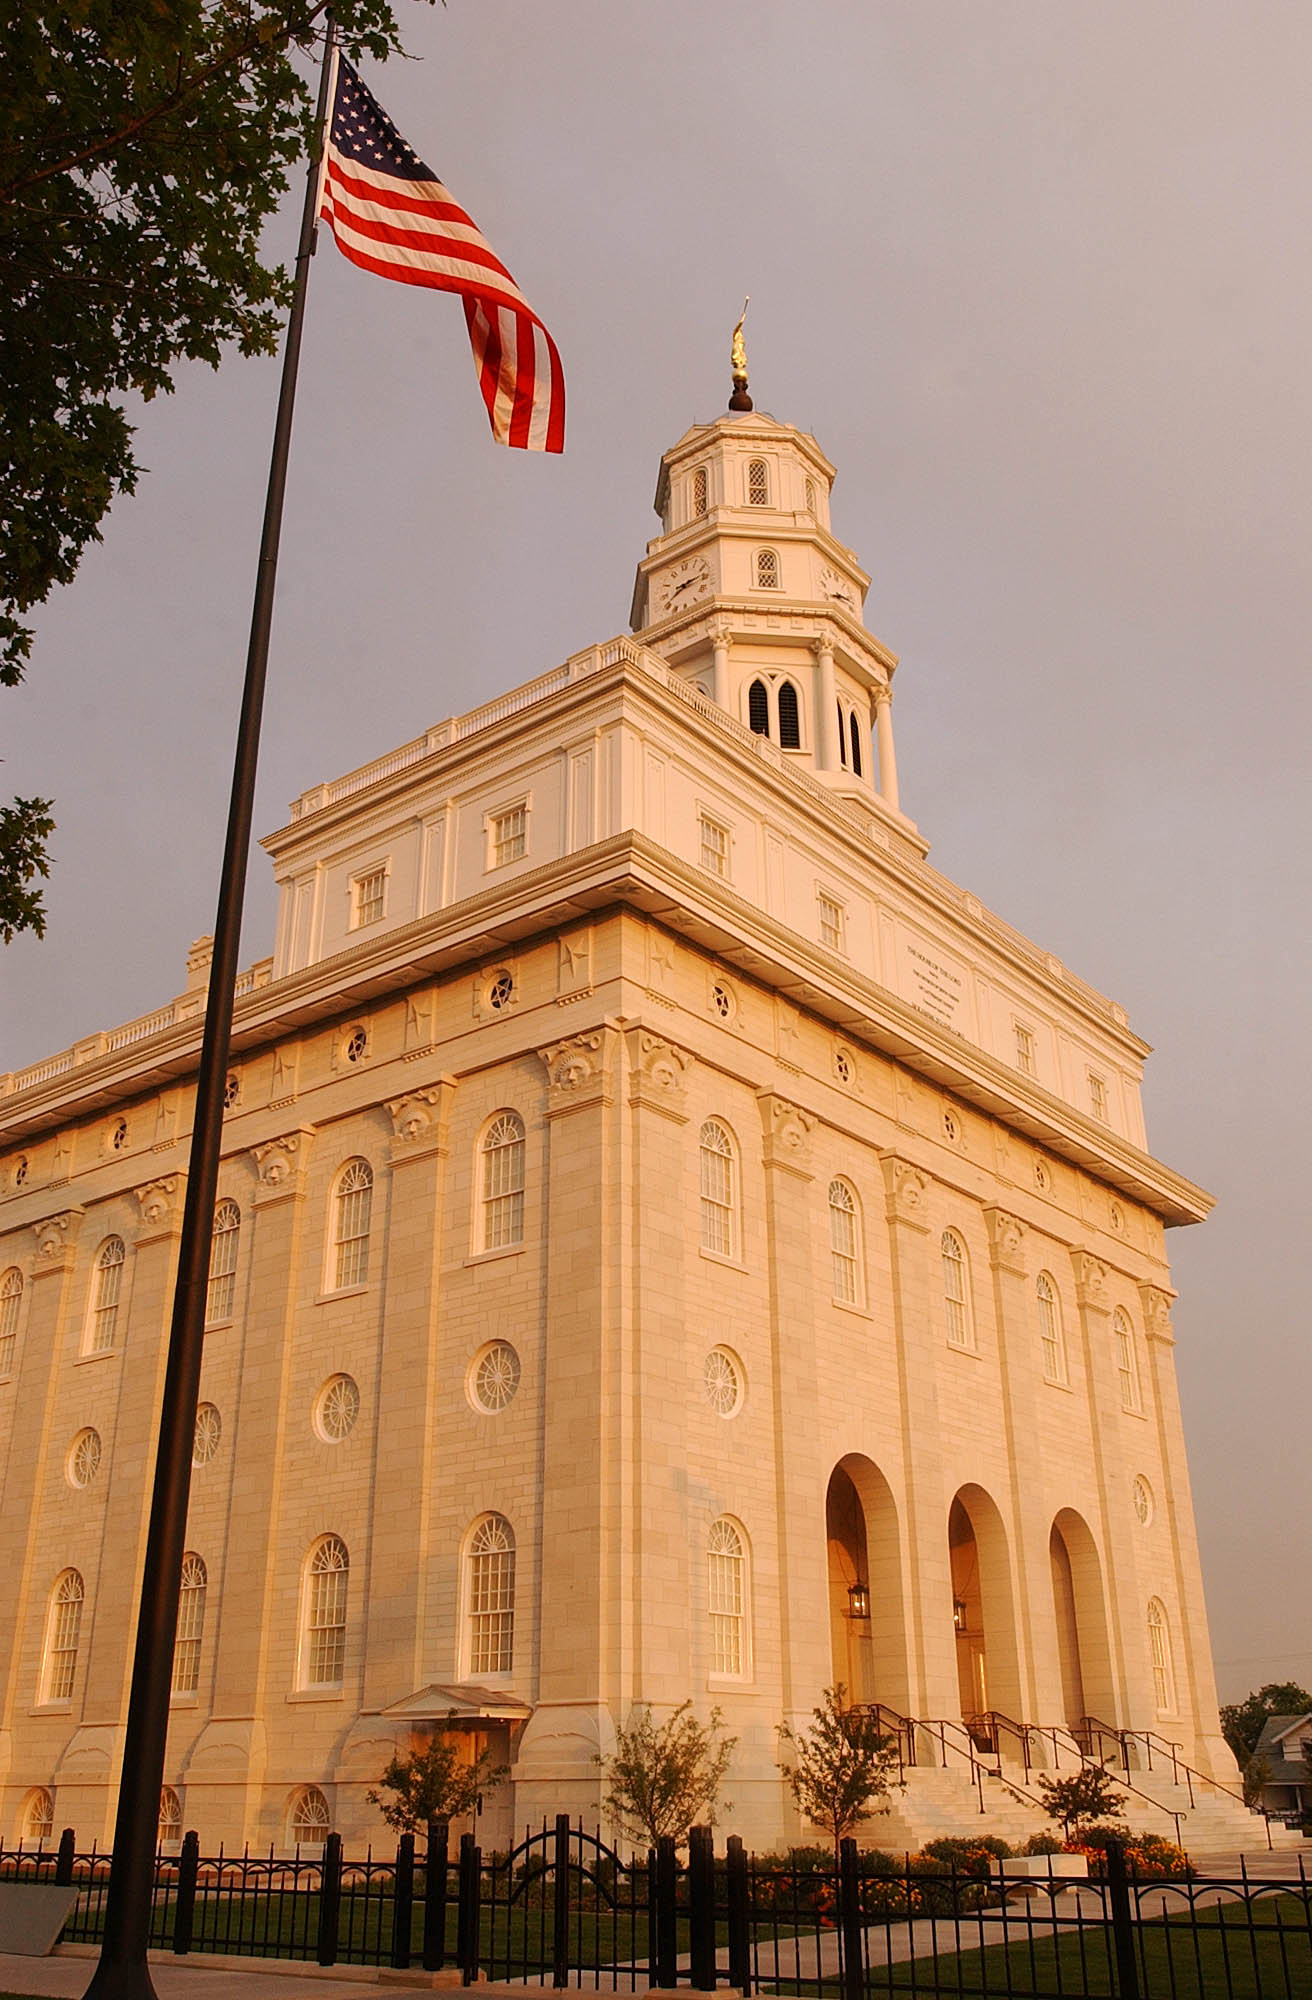 President Gordon B. Hinckley dedicated the reconstructed Nauvoo Illinois Temple; he presided over 13 sessions June 27-30, 2002.